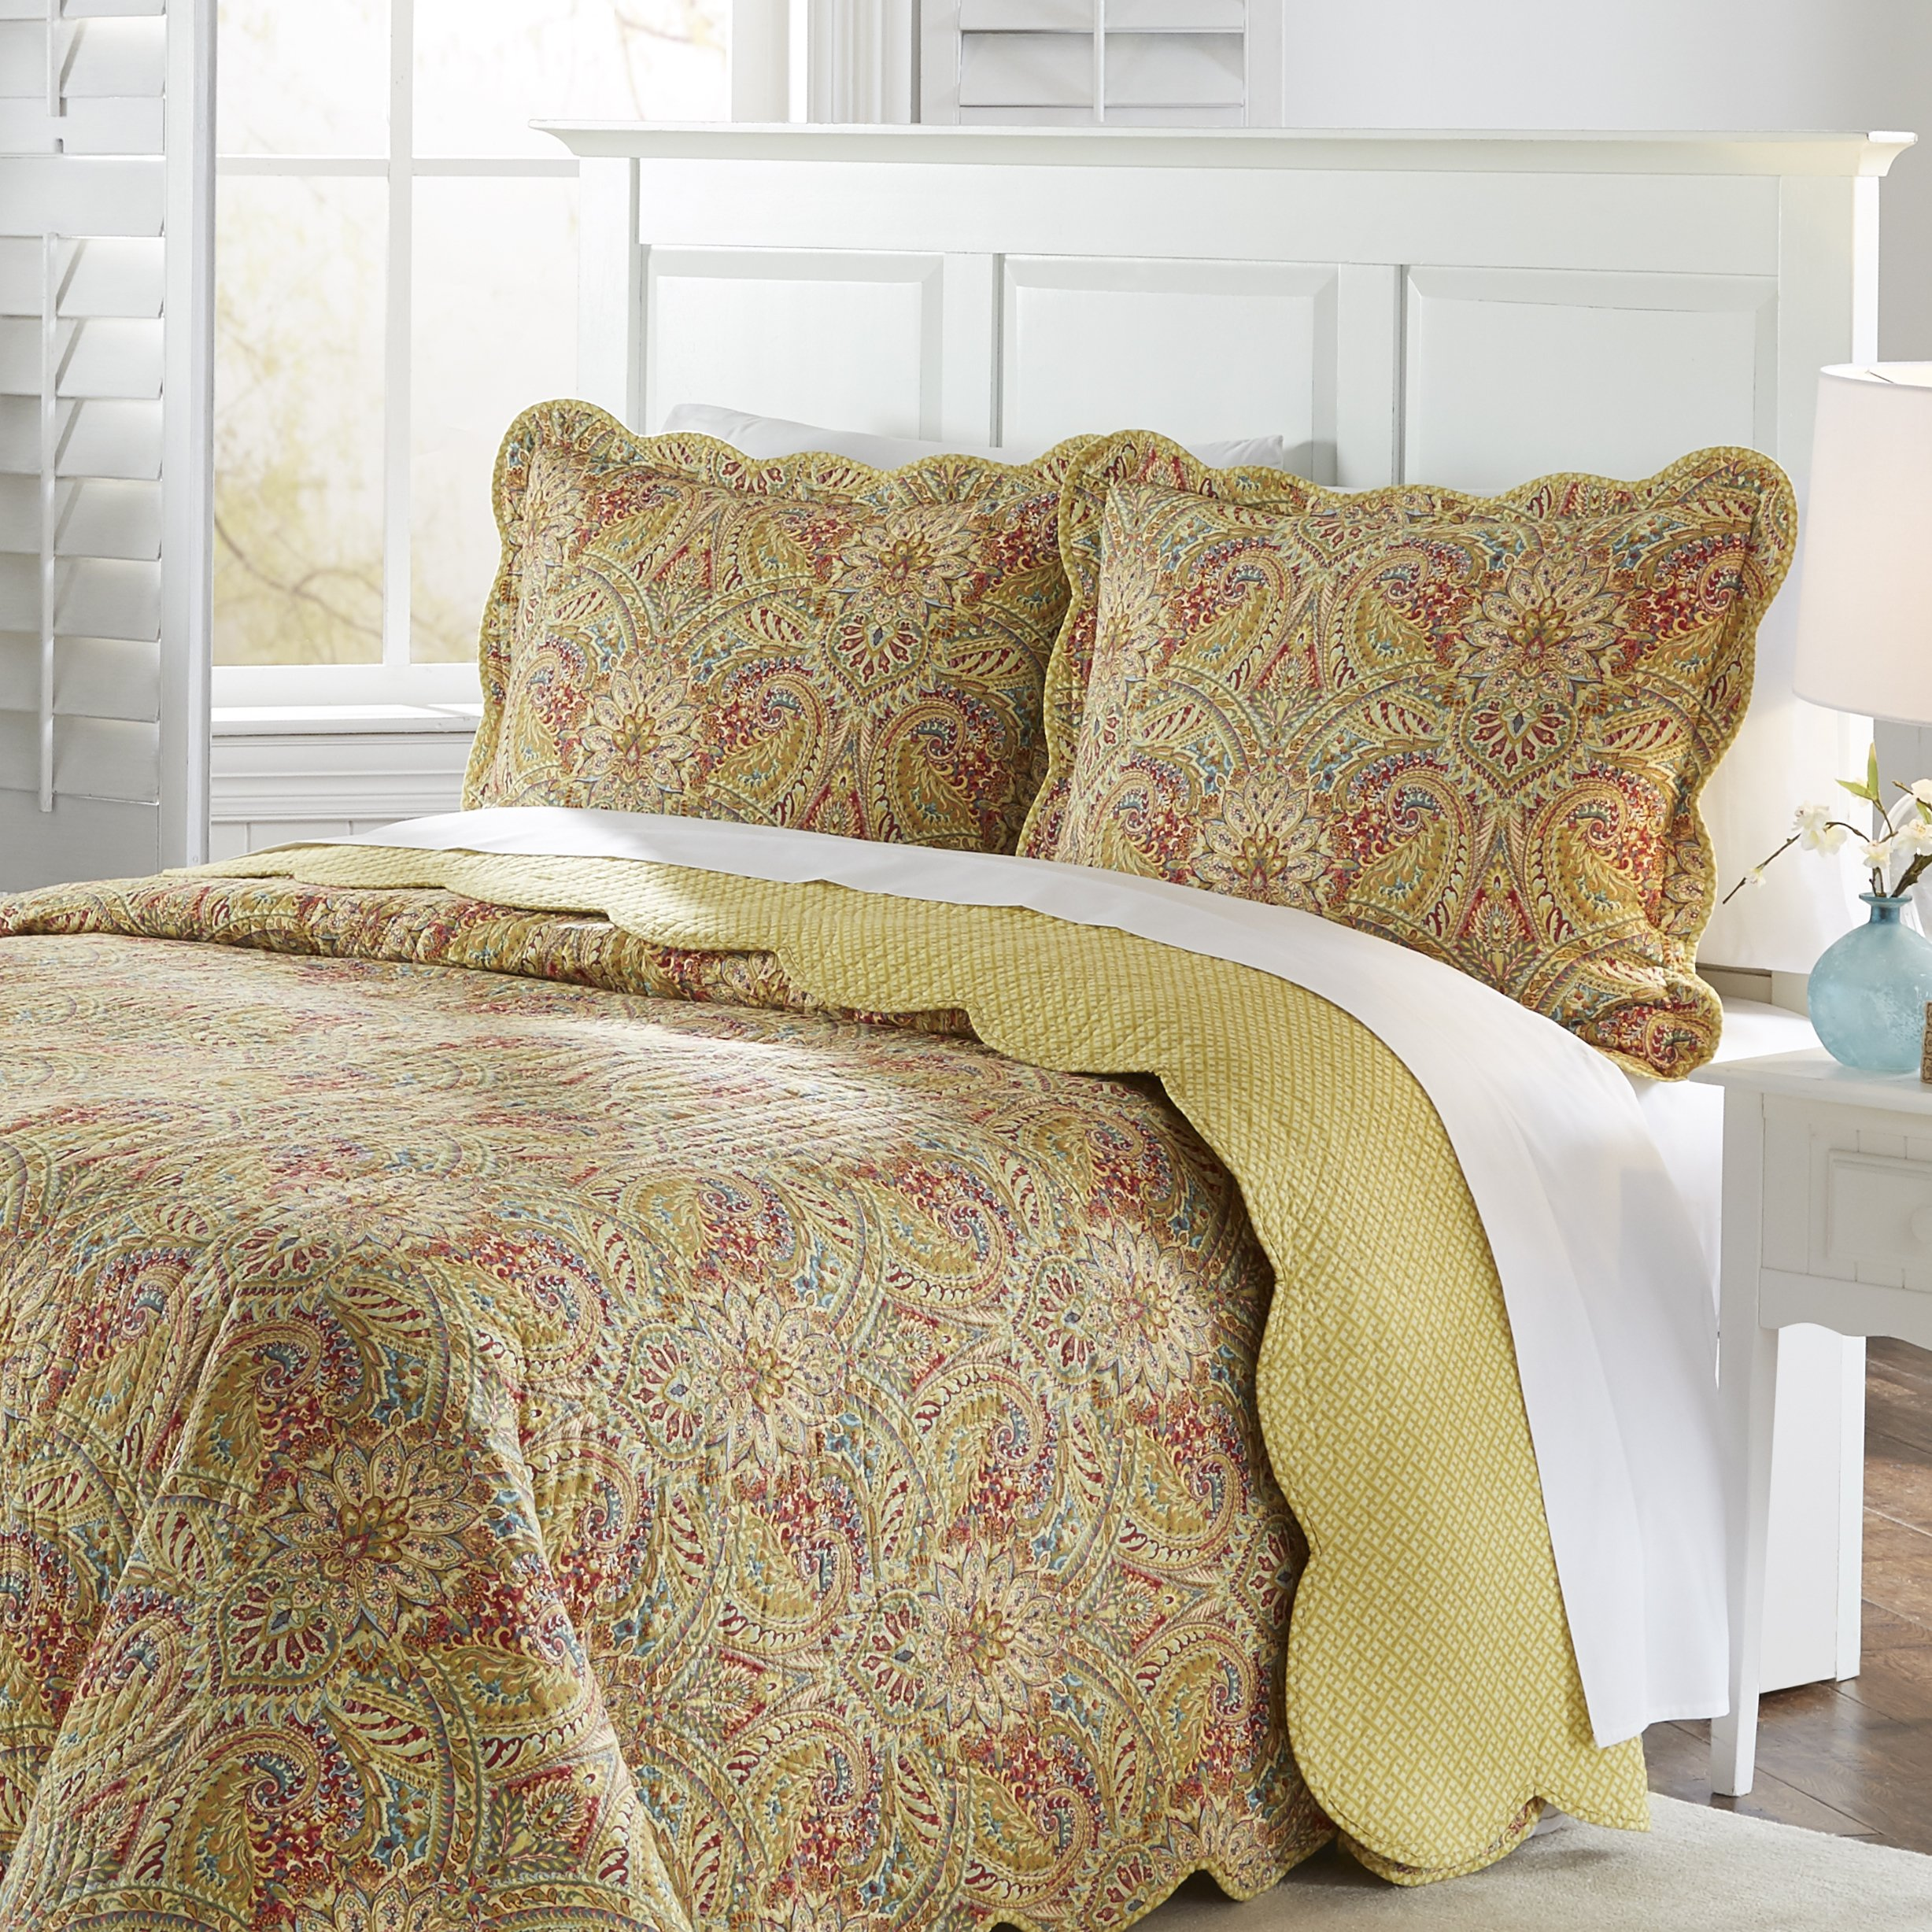 Waverly Swept Away Bedspread Collection, 110x120, Berry by Waverly (Image #6)